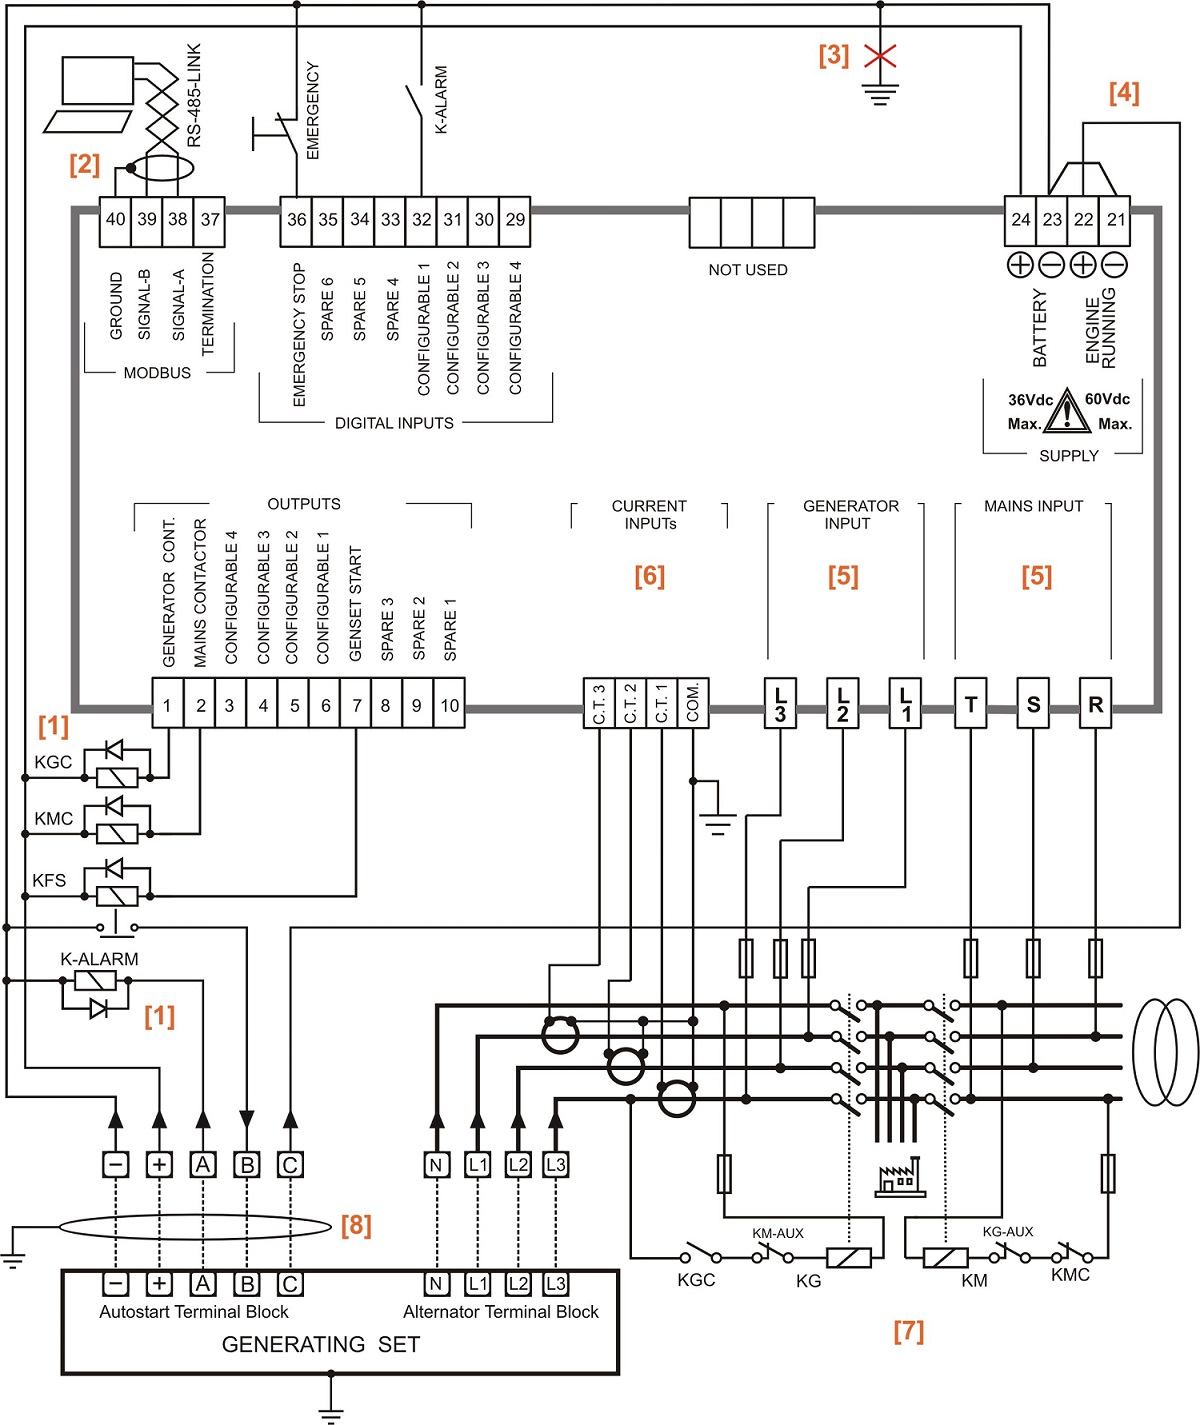 automatic transfer switch circuit diagram genset controller automatic transfer switch circuit diagram